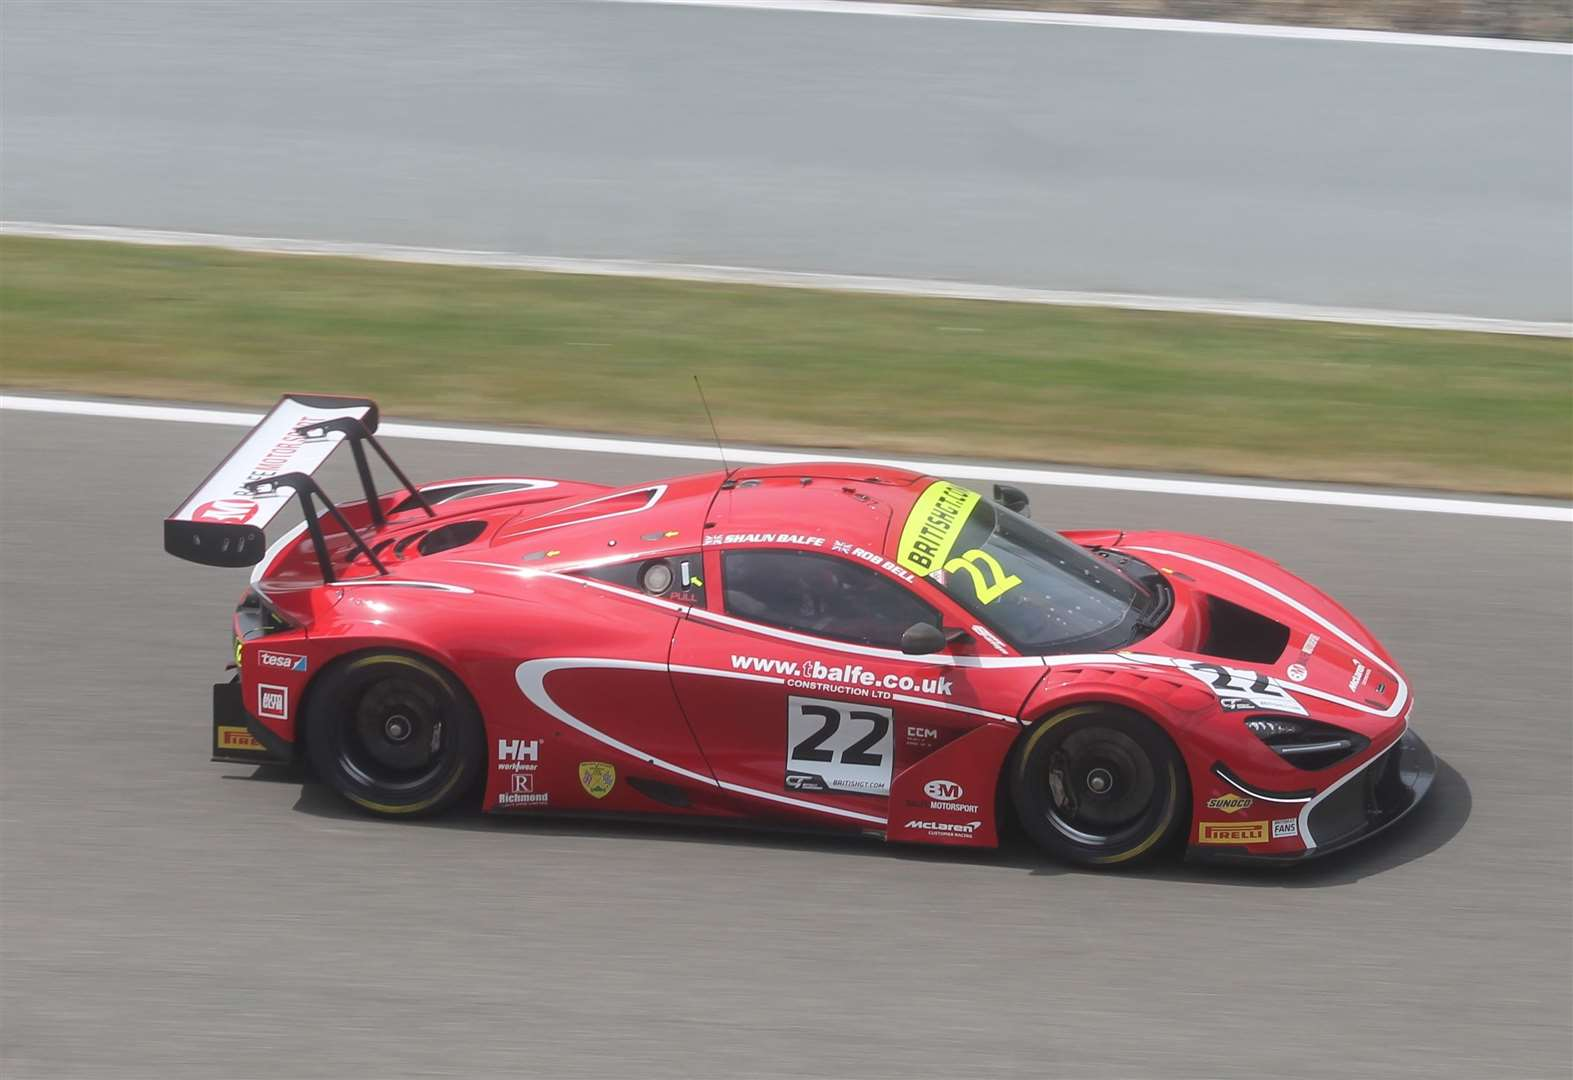 Thrills, spills and podium for Balfe teams at Spa